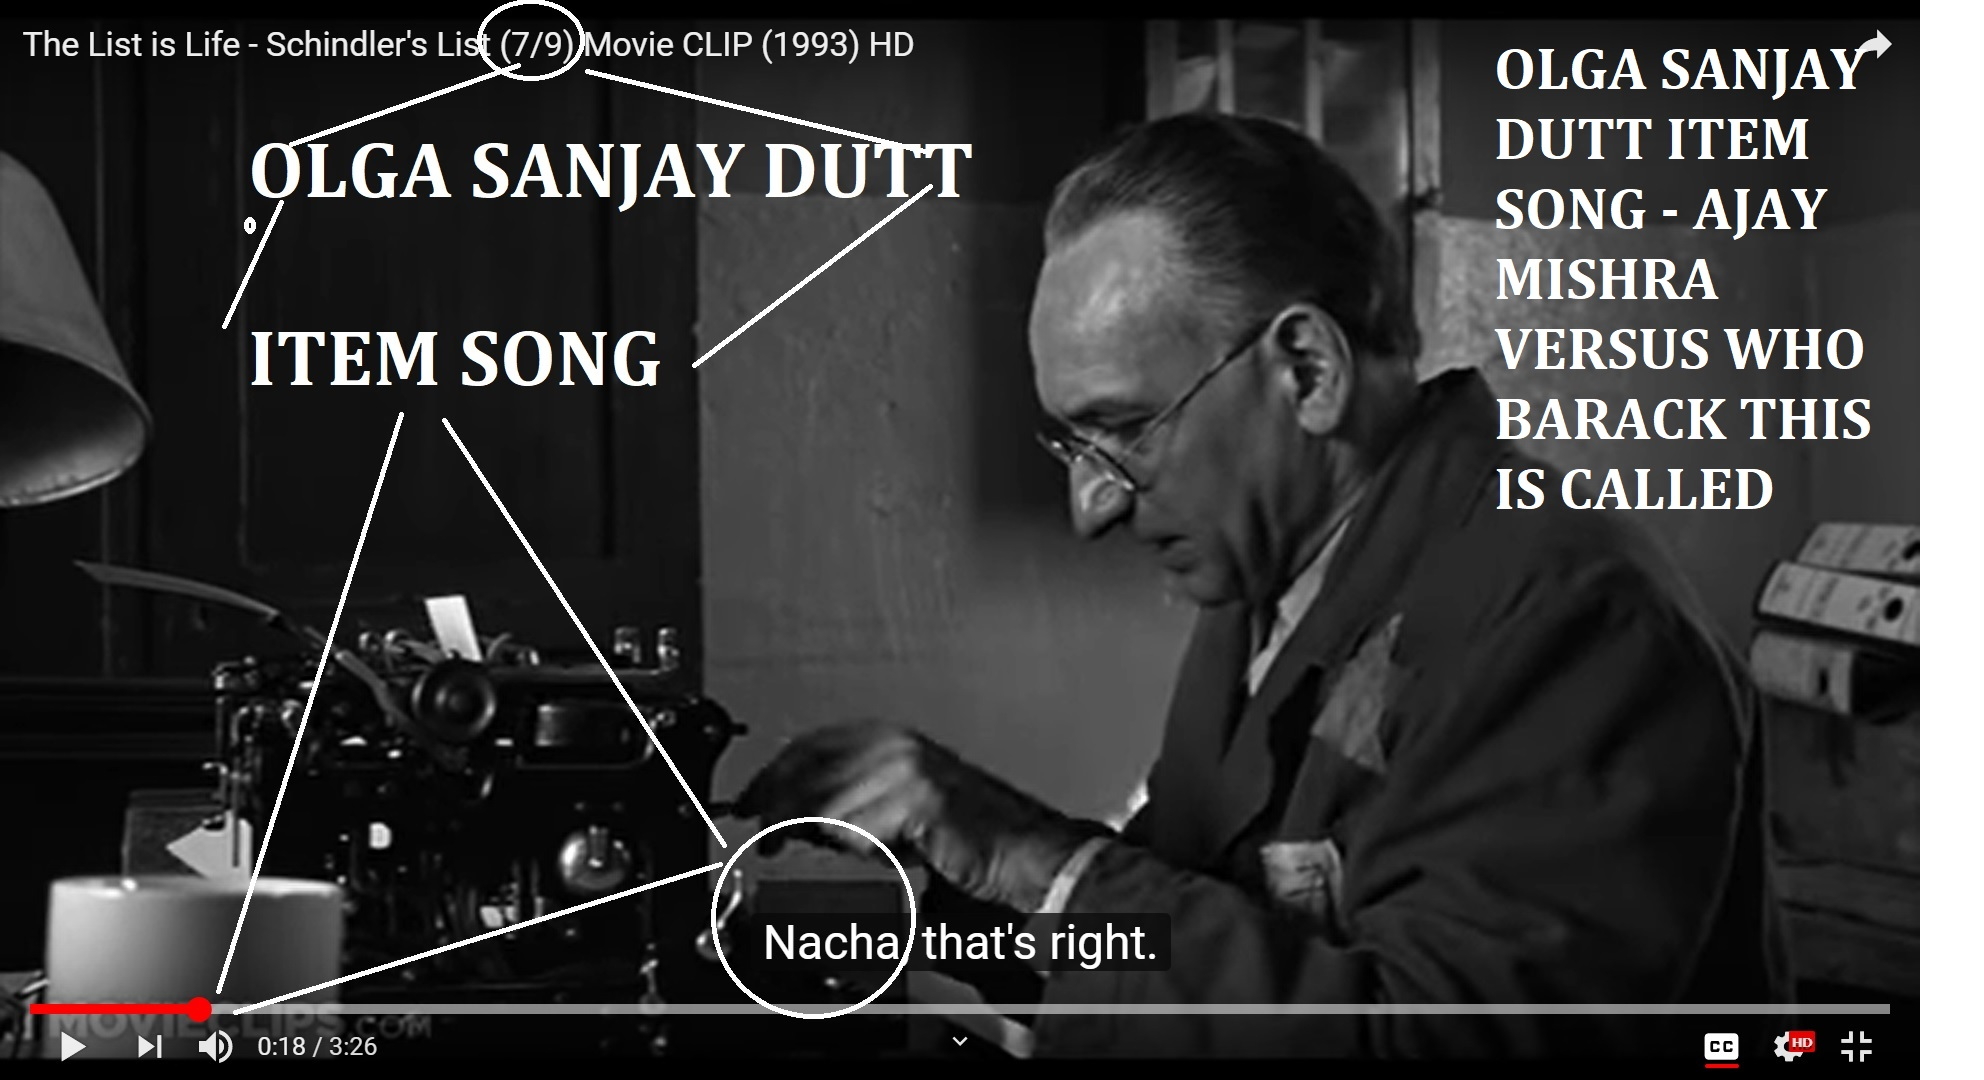 OLGA SANJAY DUTT ITEM SONG - AJAY MISHRA VERSUS WHO BARACK THIS IS CALLED